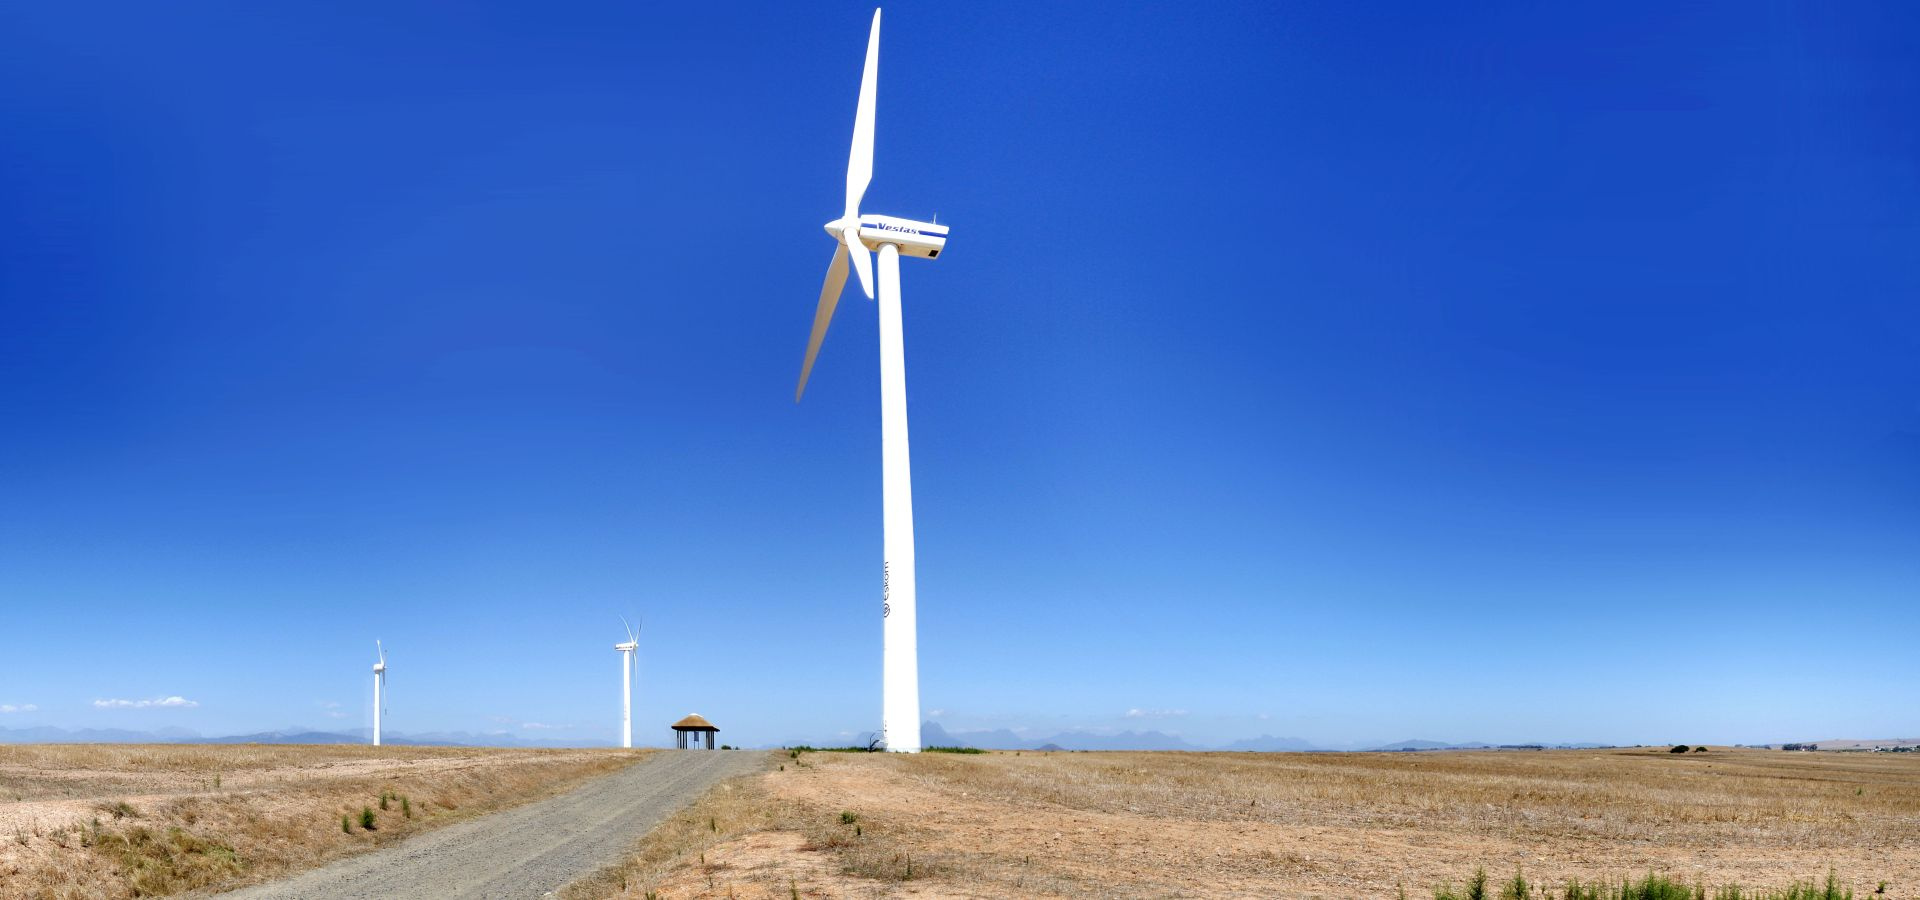 A wind mill in a very dry-looking are, the sun is shining and ther is no cloud in the sky.